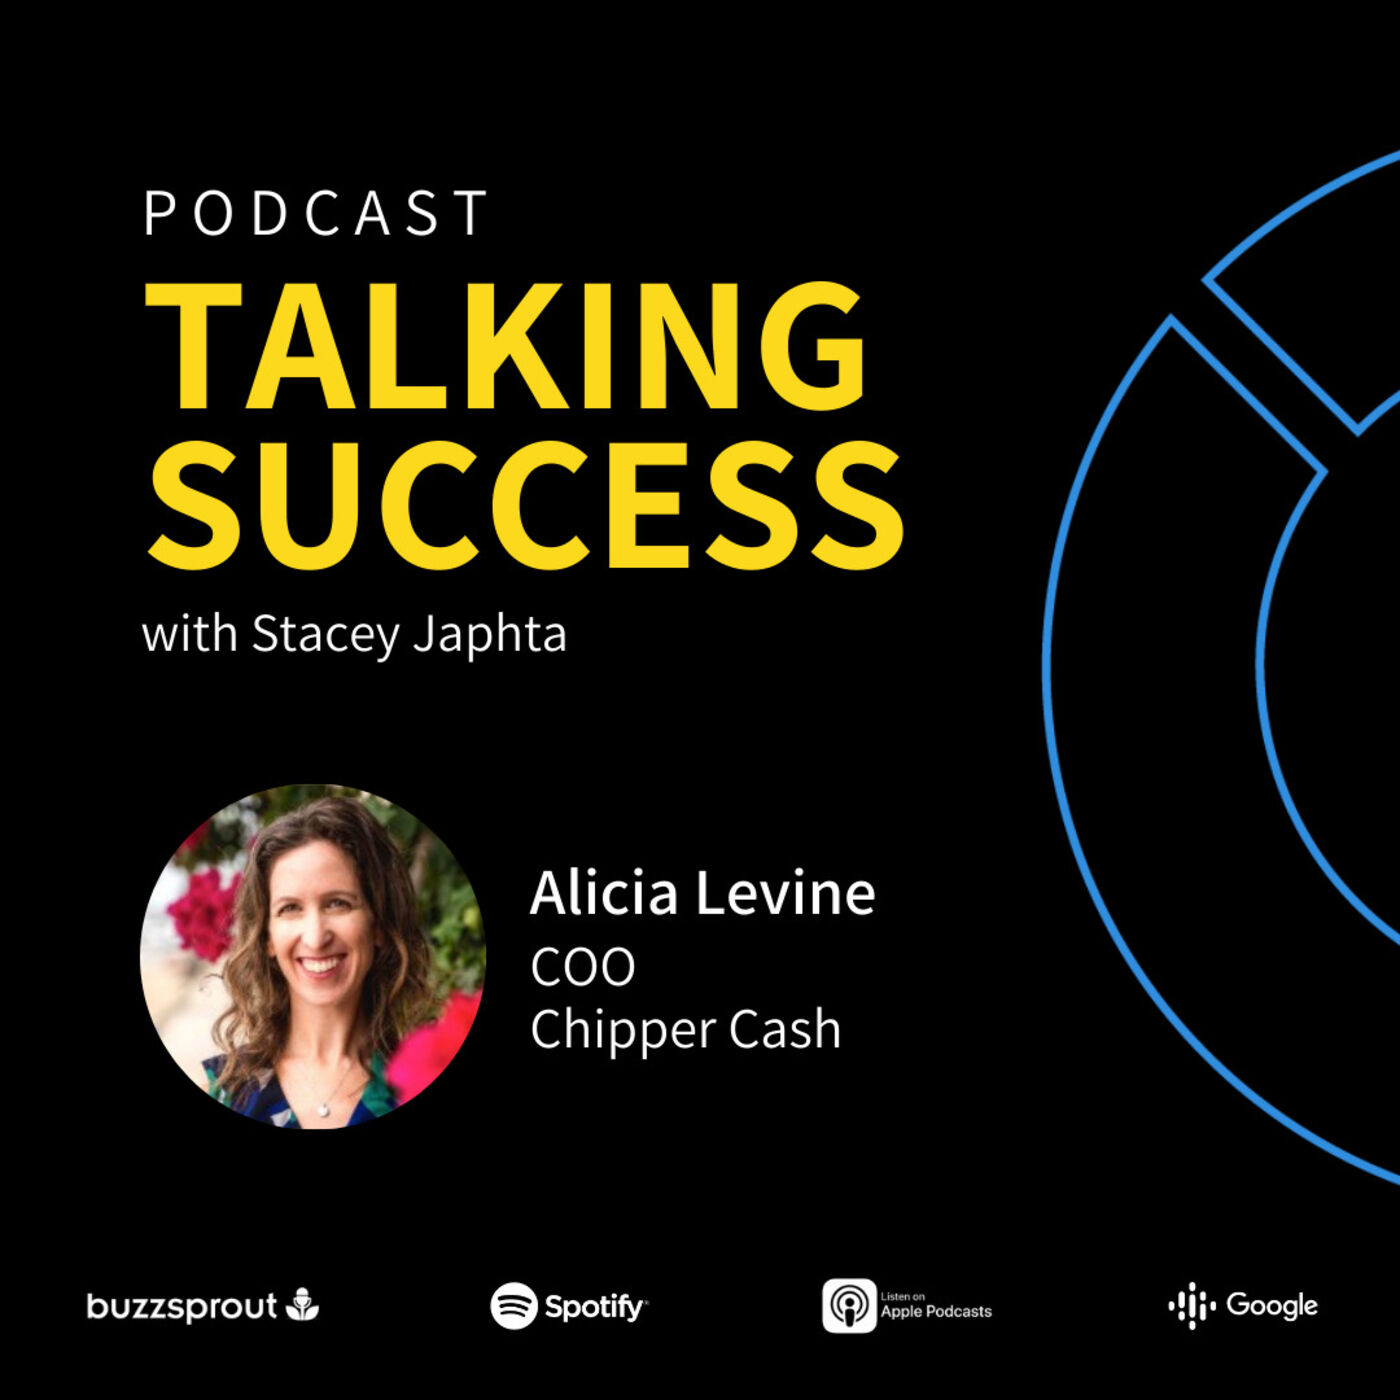 Alicia Levine, COO of Chipper Cash - All things FinTech, how to create your dream job, & our thoughts on OKRs as a goal-setting tool